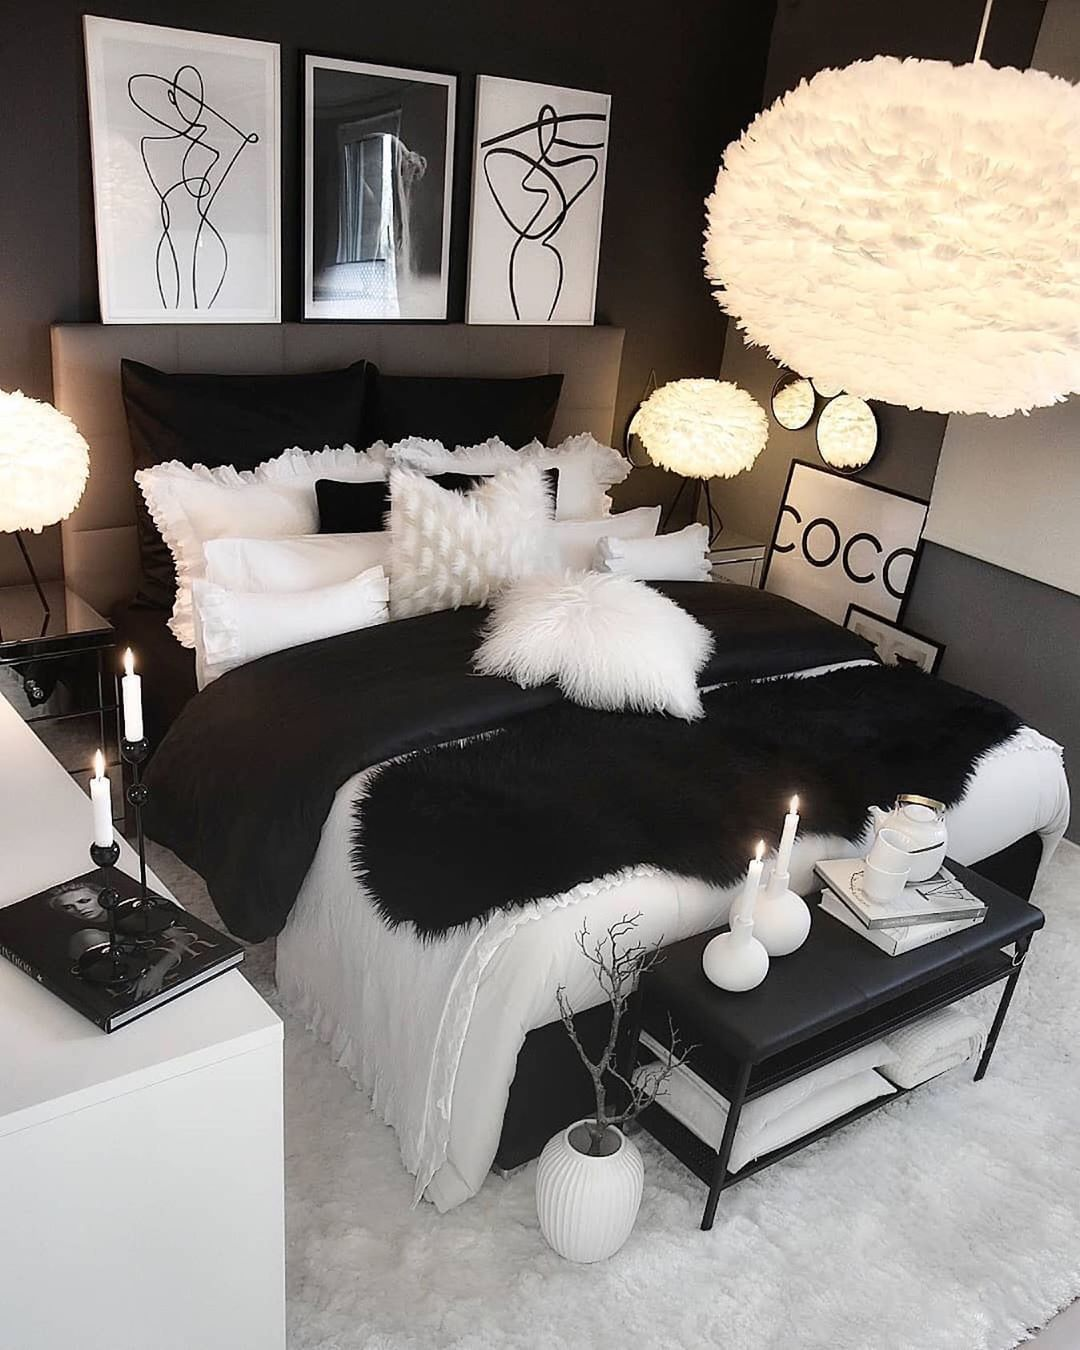 Interioresta On Instagram You Can T Go Wrong With The Styling Of A Black White Room Wh Master Bedrooms Decor Room Ideas Bedroom Room Decor Bedroom